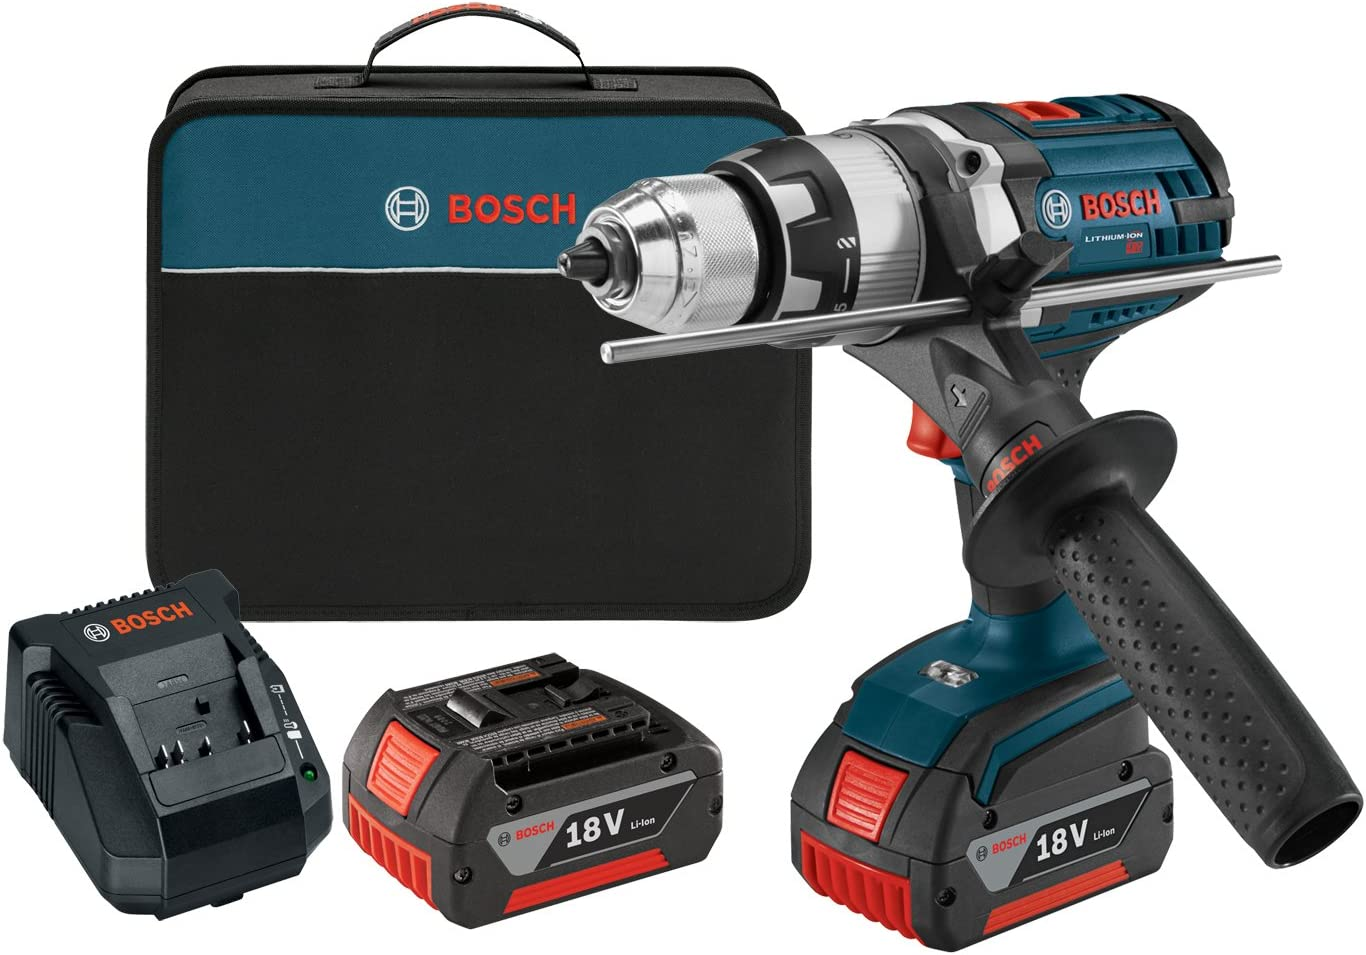 Bosch HDH181X-01 18-volt 1 2-Inch Brute Tough Hammer Drill Driver with Active Response Technology